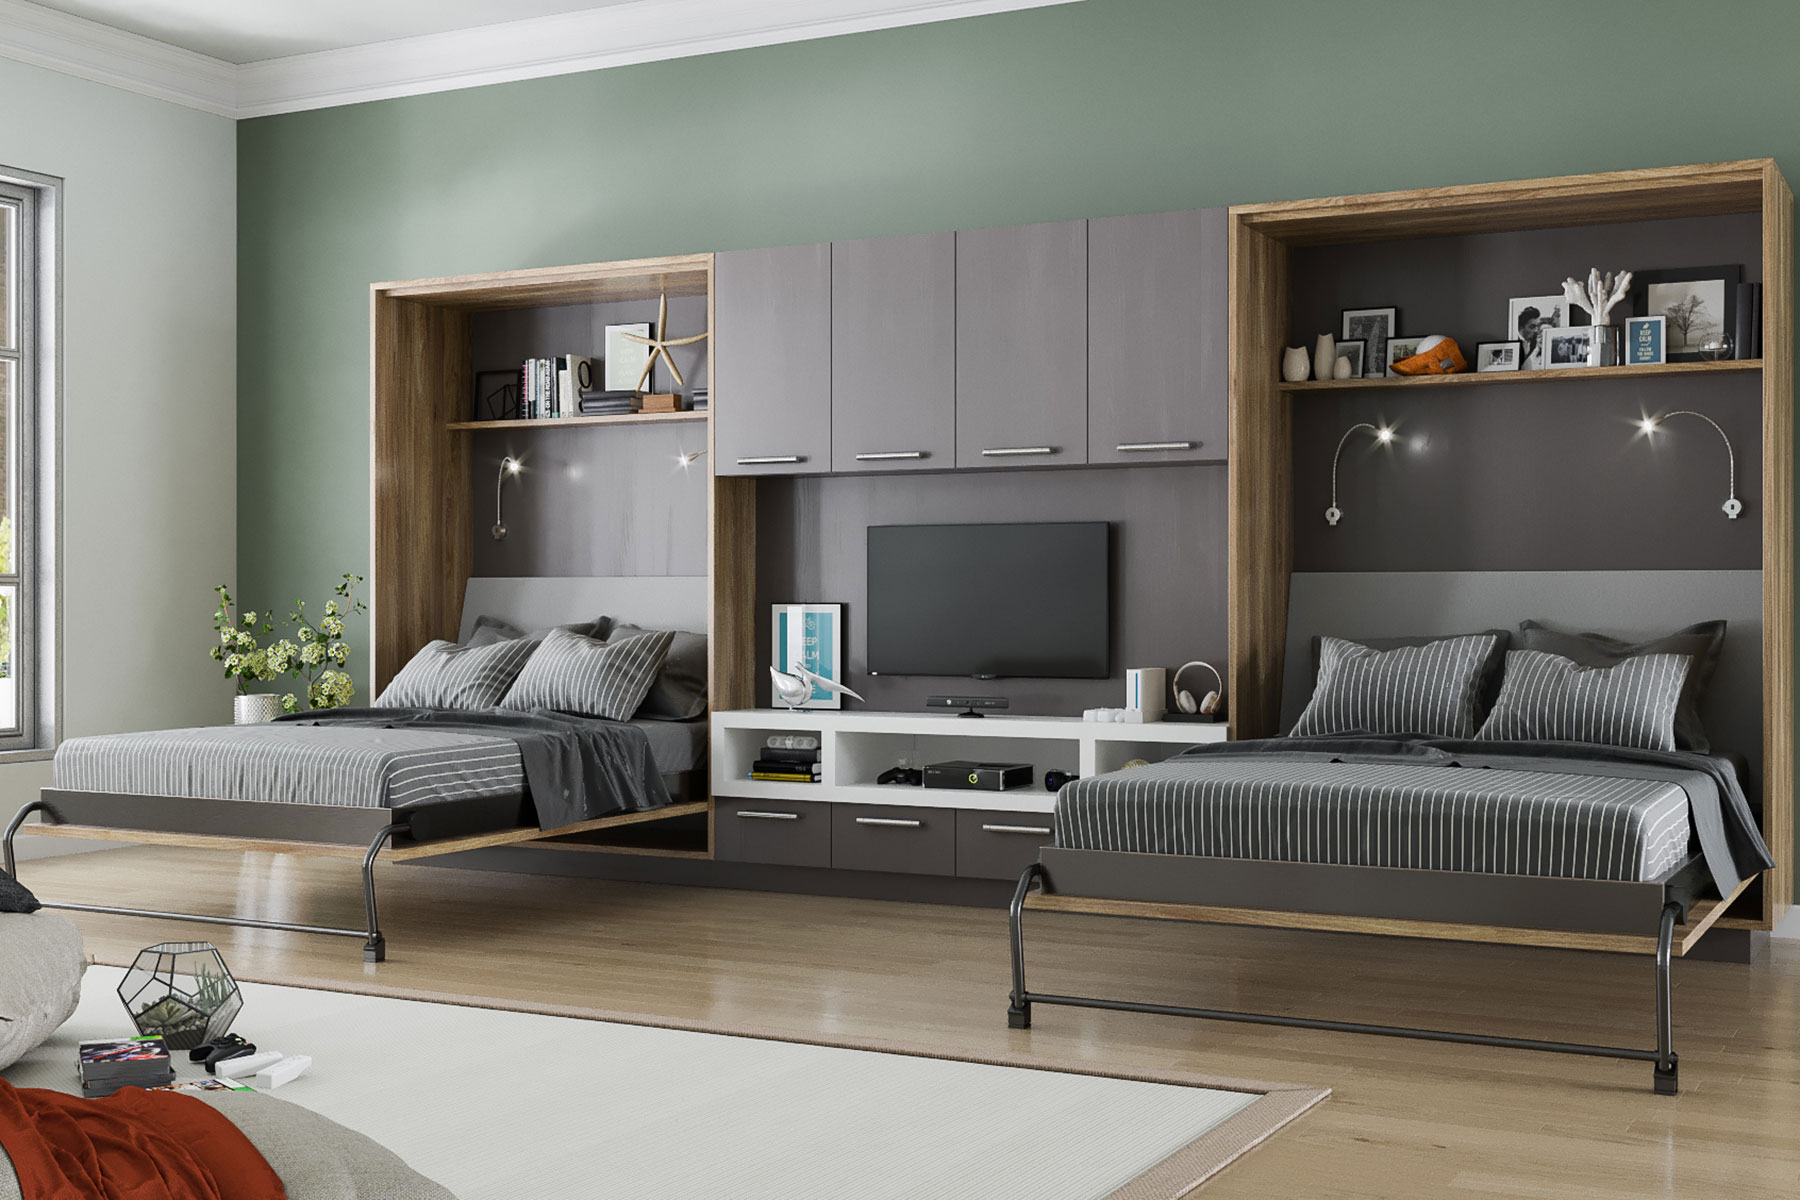 murphy bed in small living room paint colors for rooms with brown furniture wall beds and cabinet design closet factory teen modern